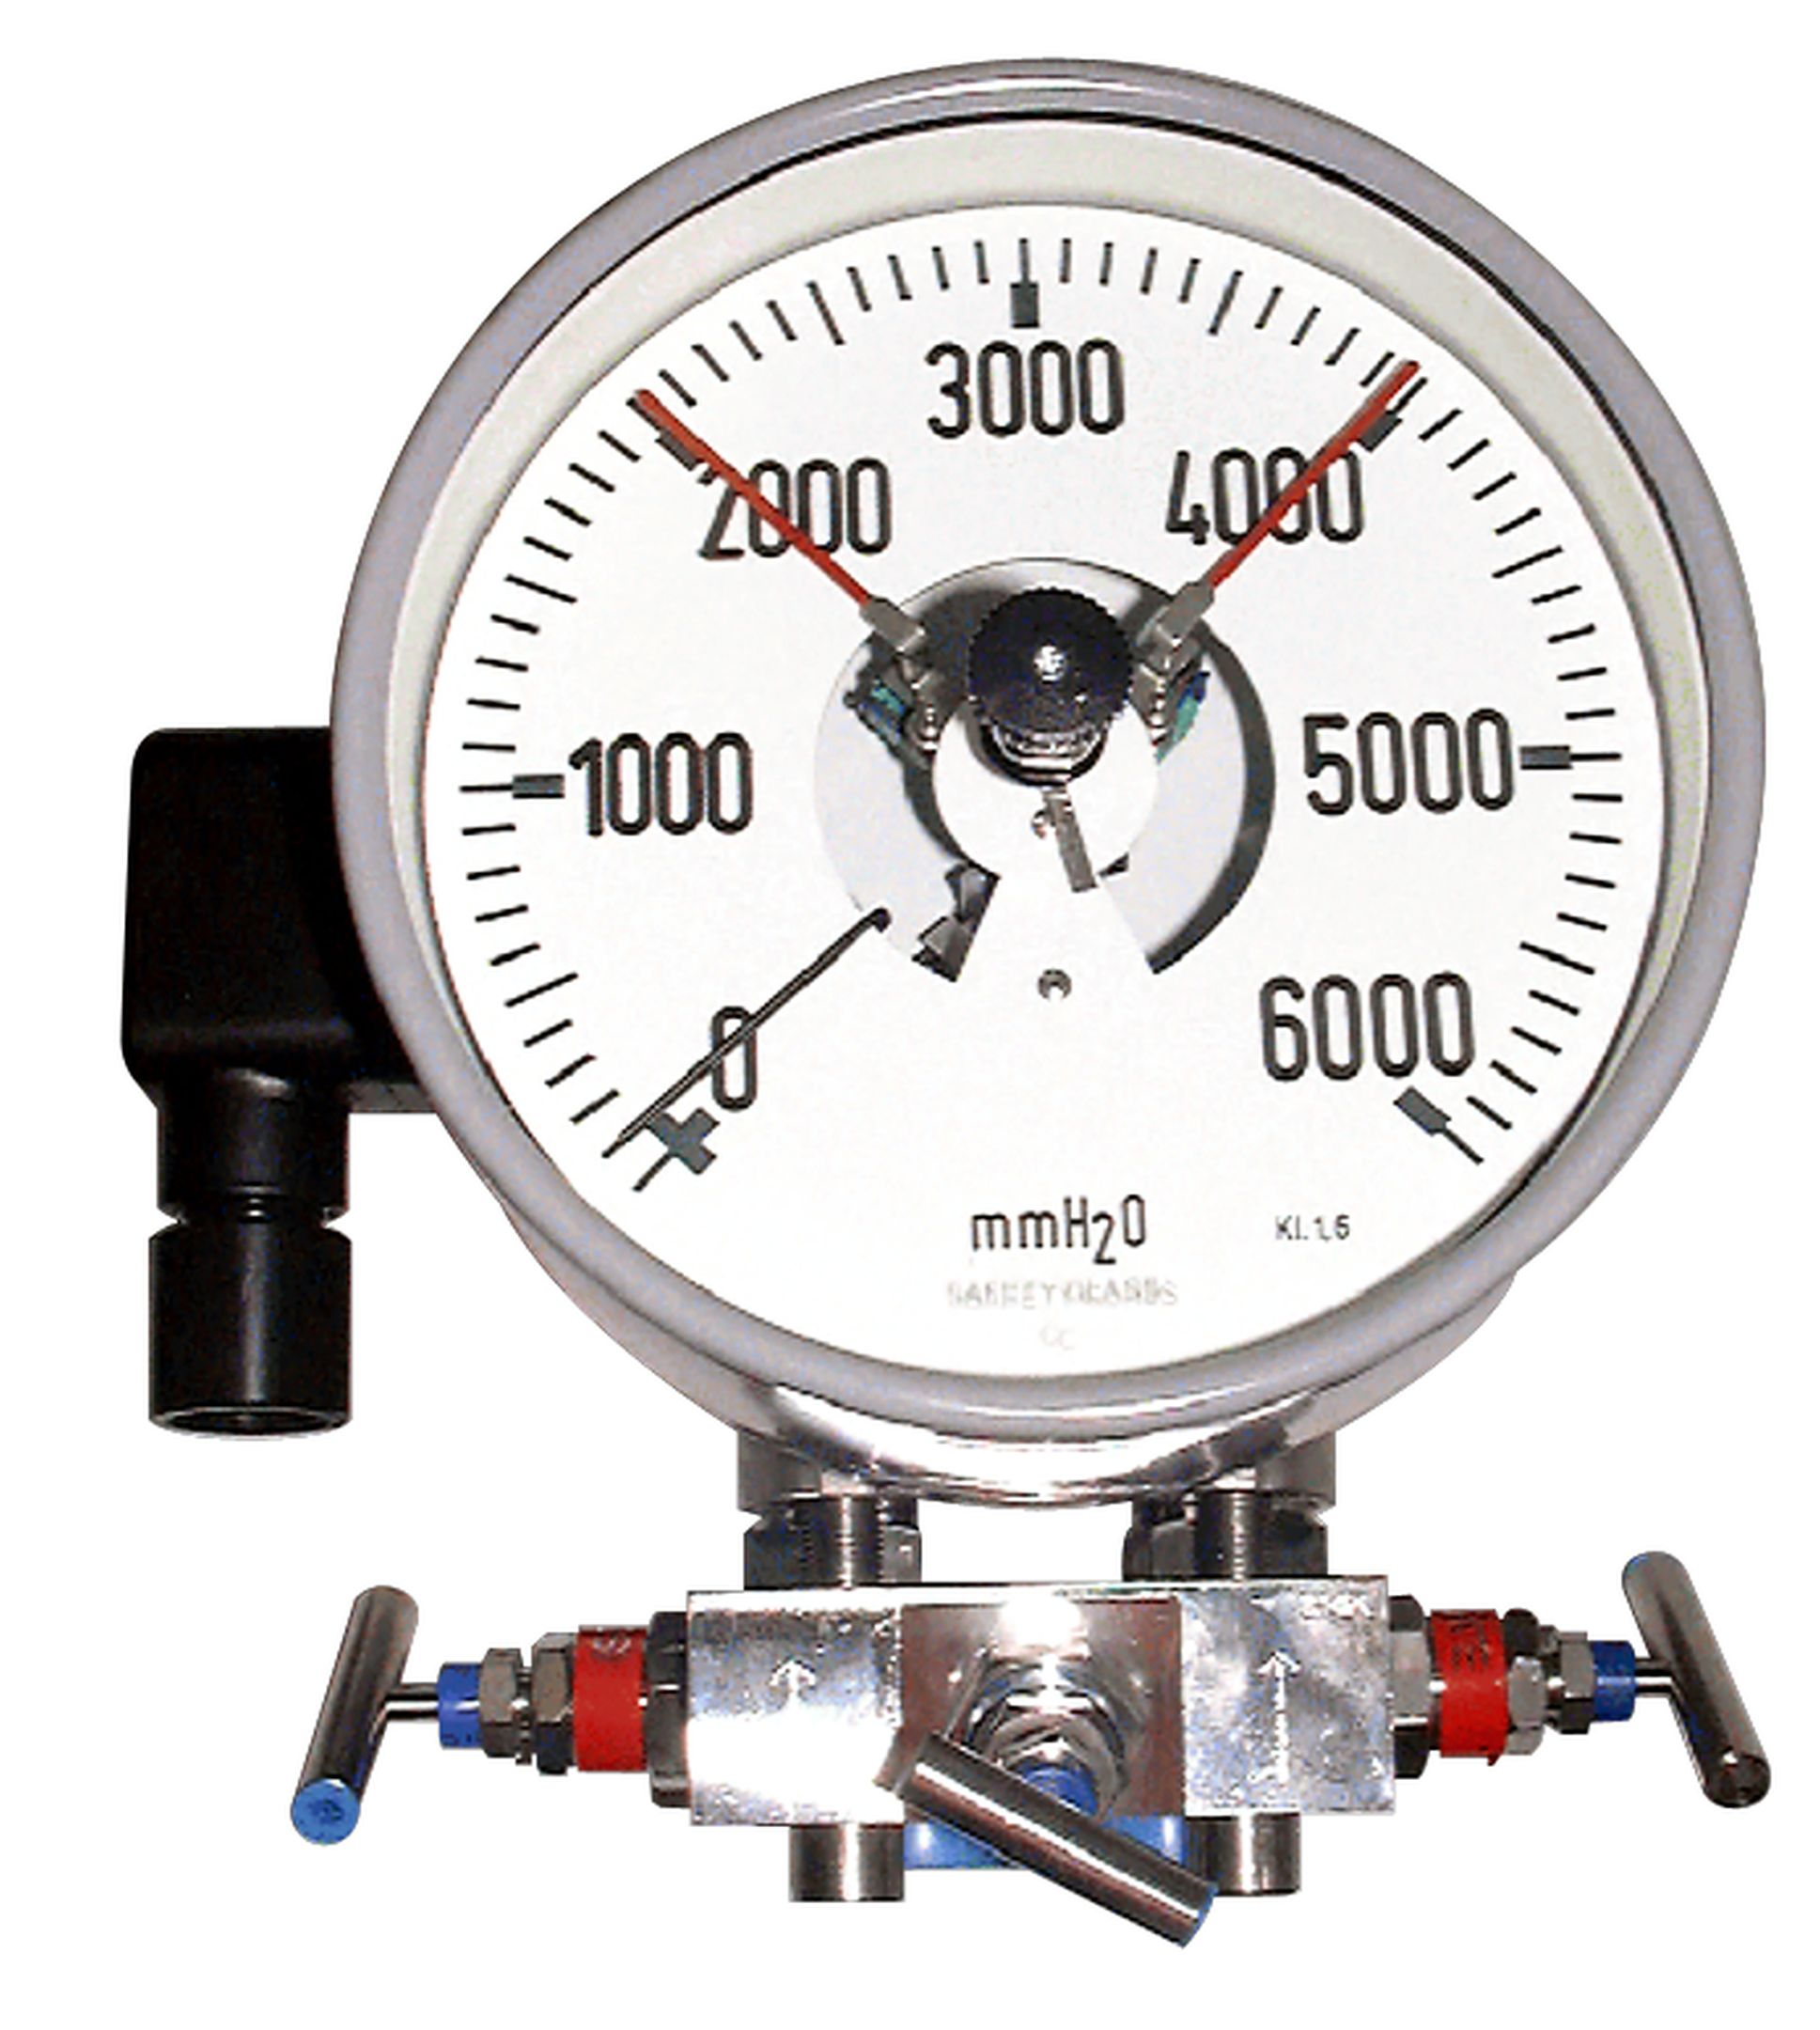 differential pressure gauge with special contact and manifold in hastelloy c